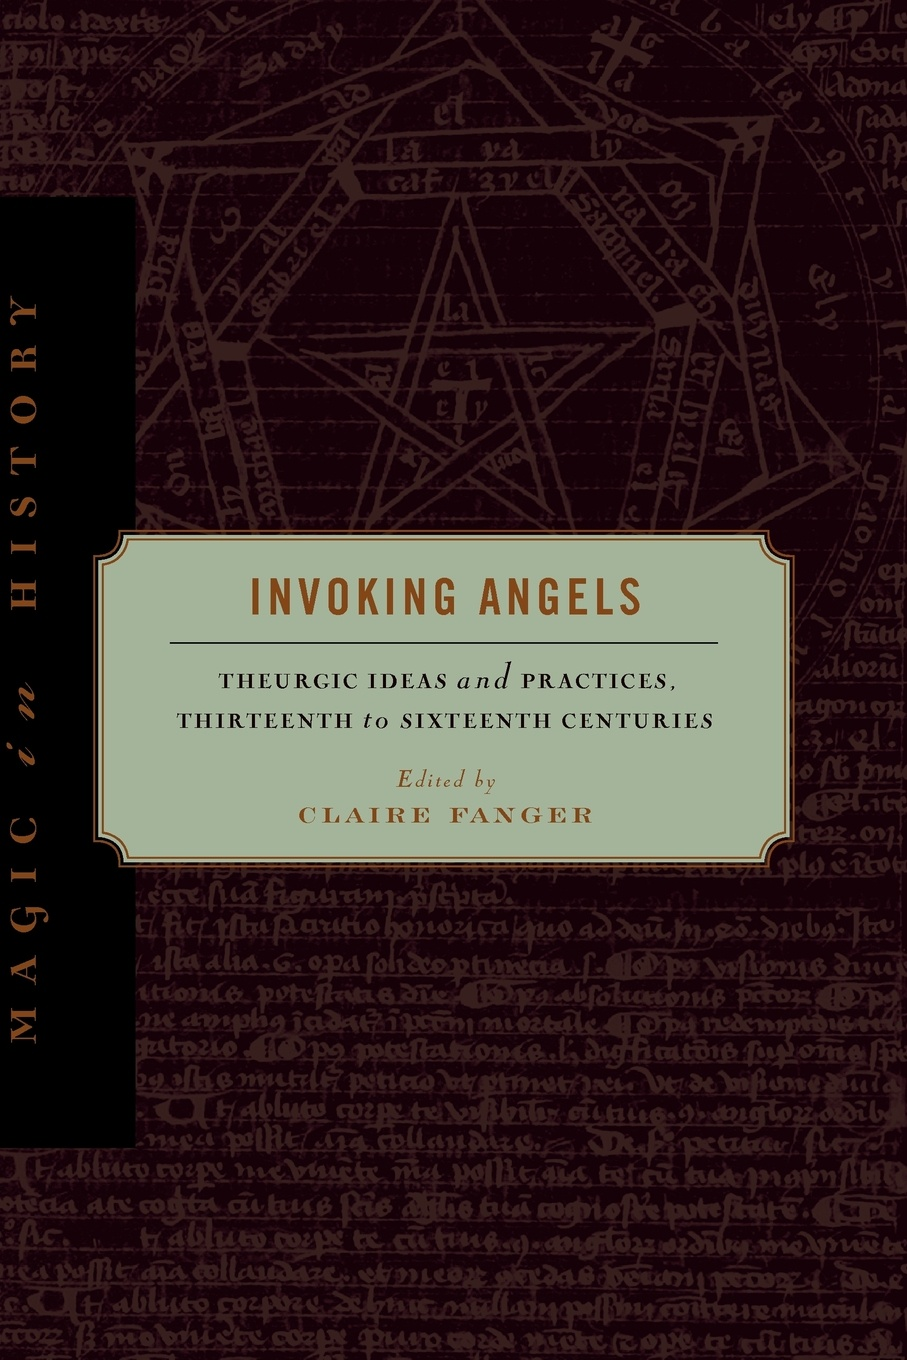 Invoking Angels. Theurgic Ideas and Practices, Thirteenth to Sixteenth Centuries